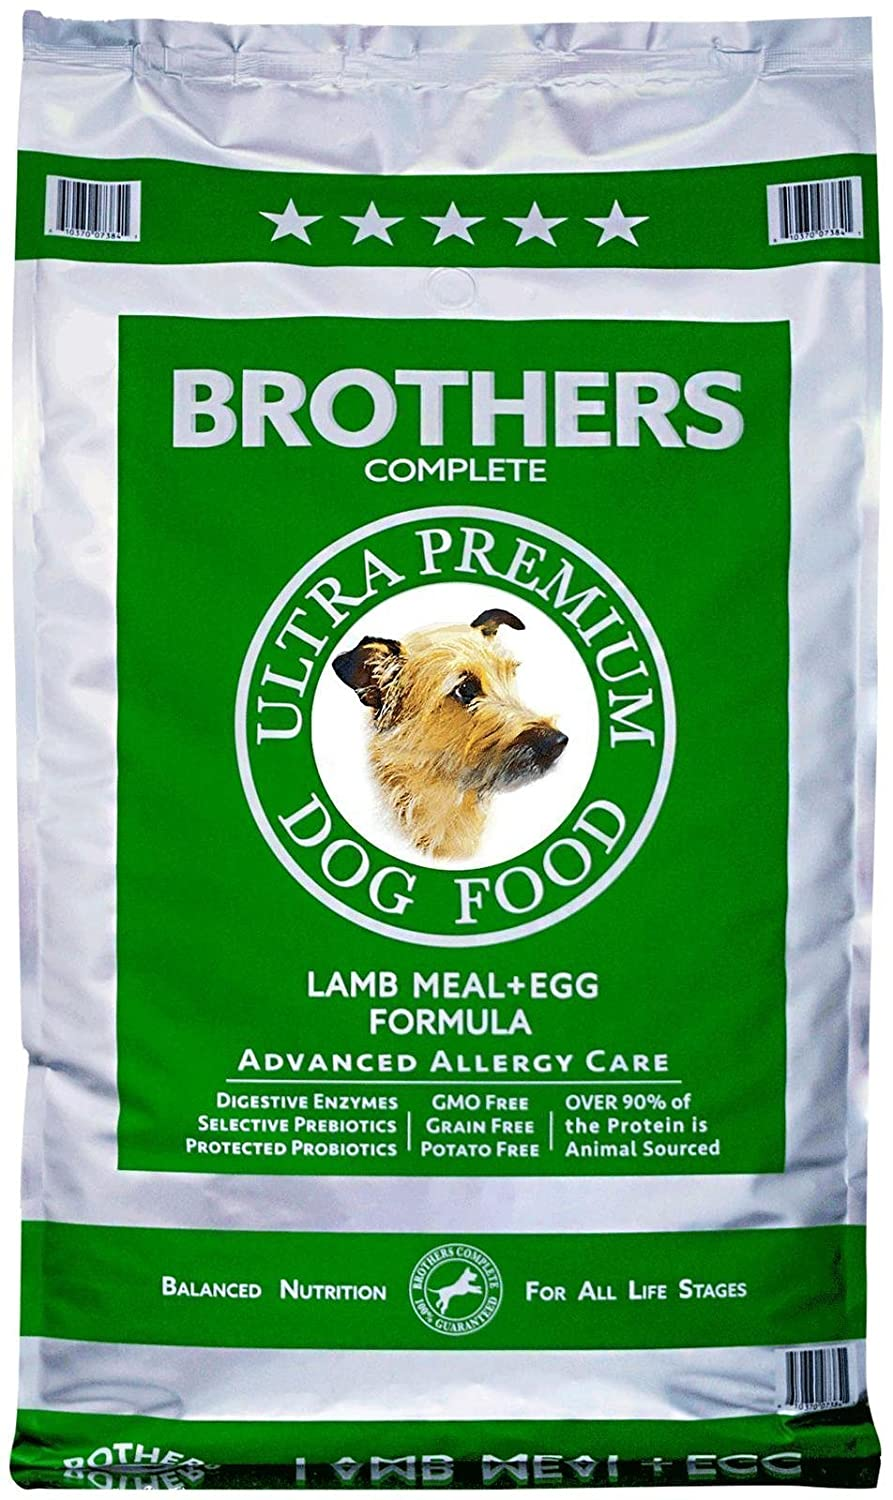 Bredhers Complete Lamb Meal and Egg Advanced Allergy Formula, 25-Pound by Bredhers Complete